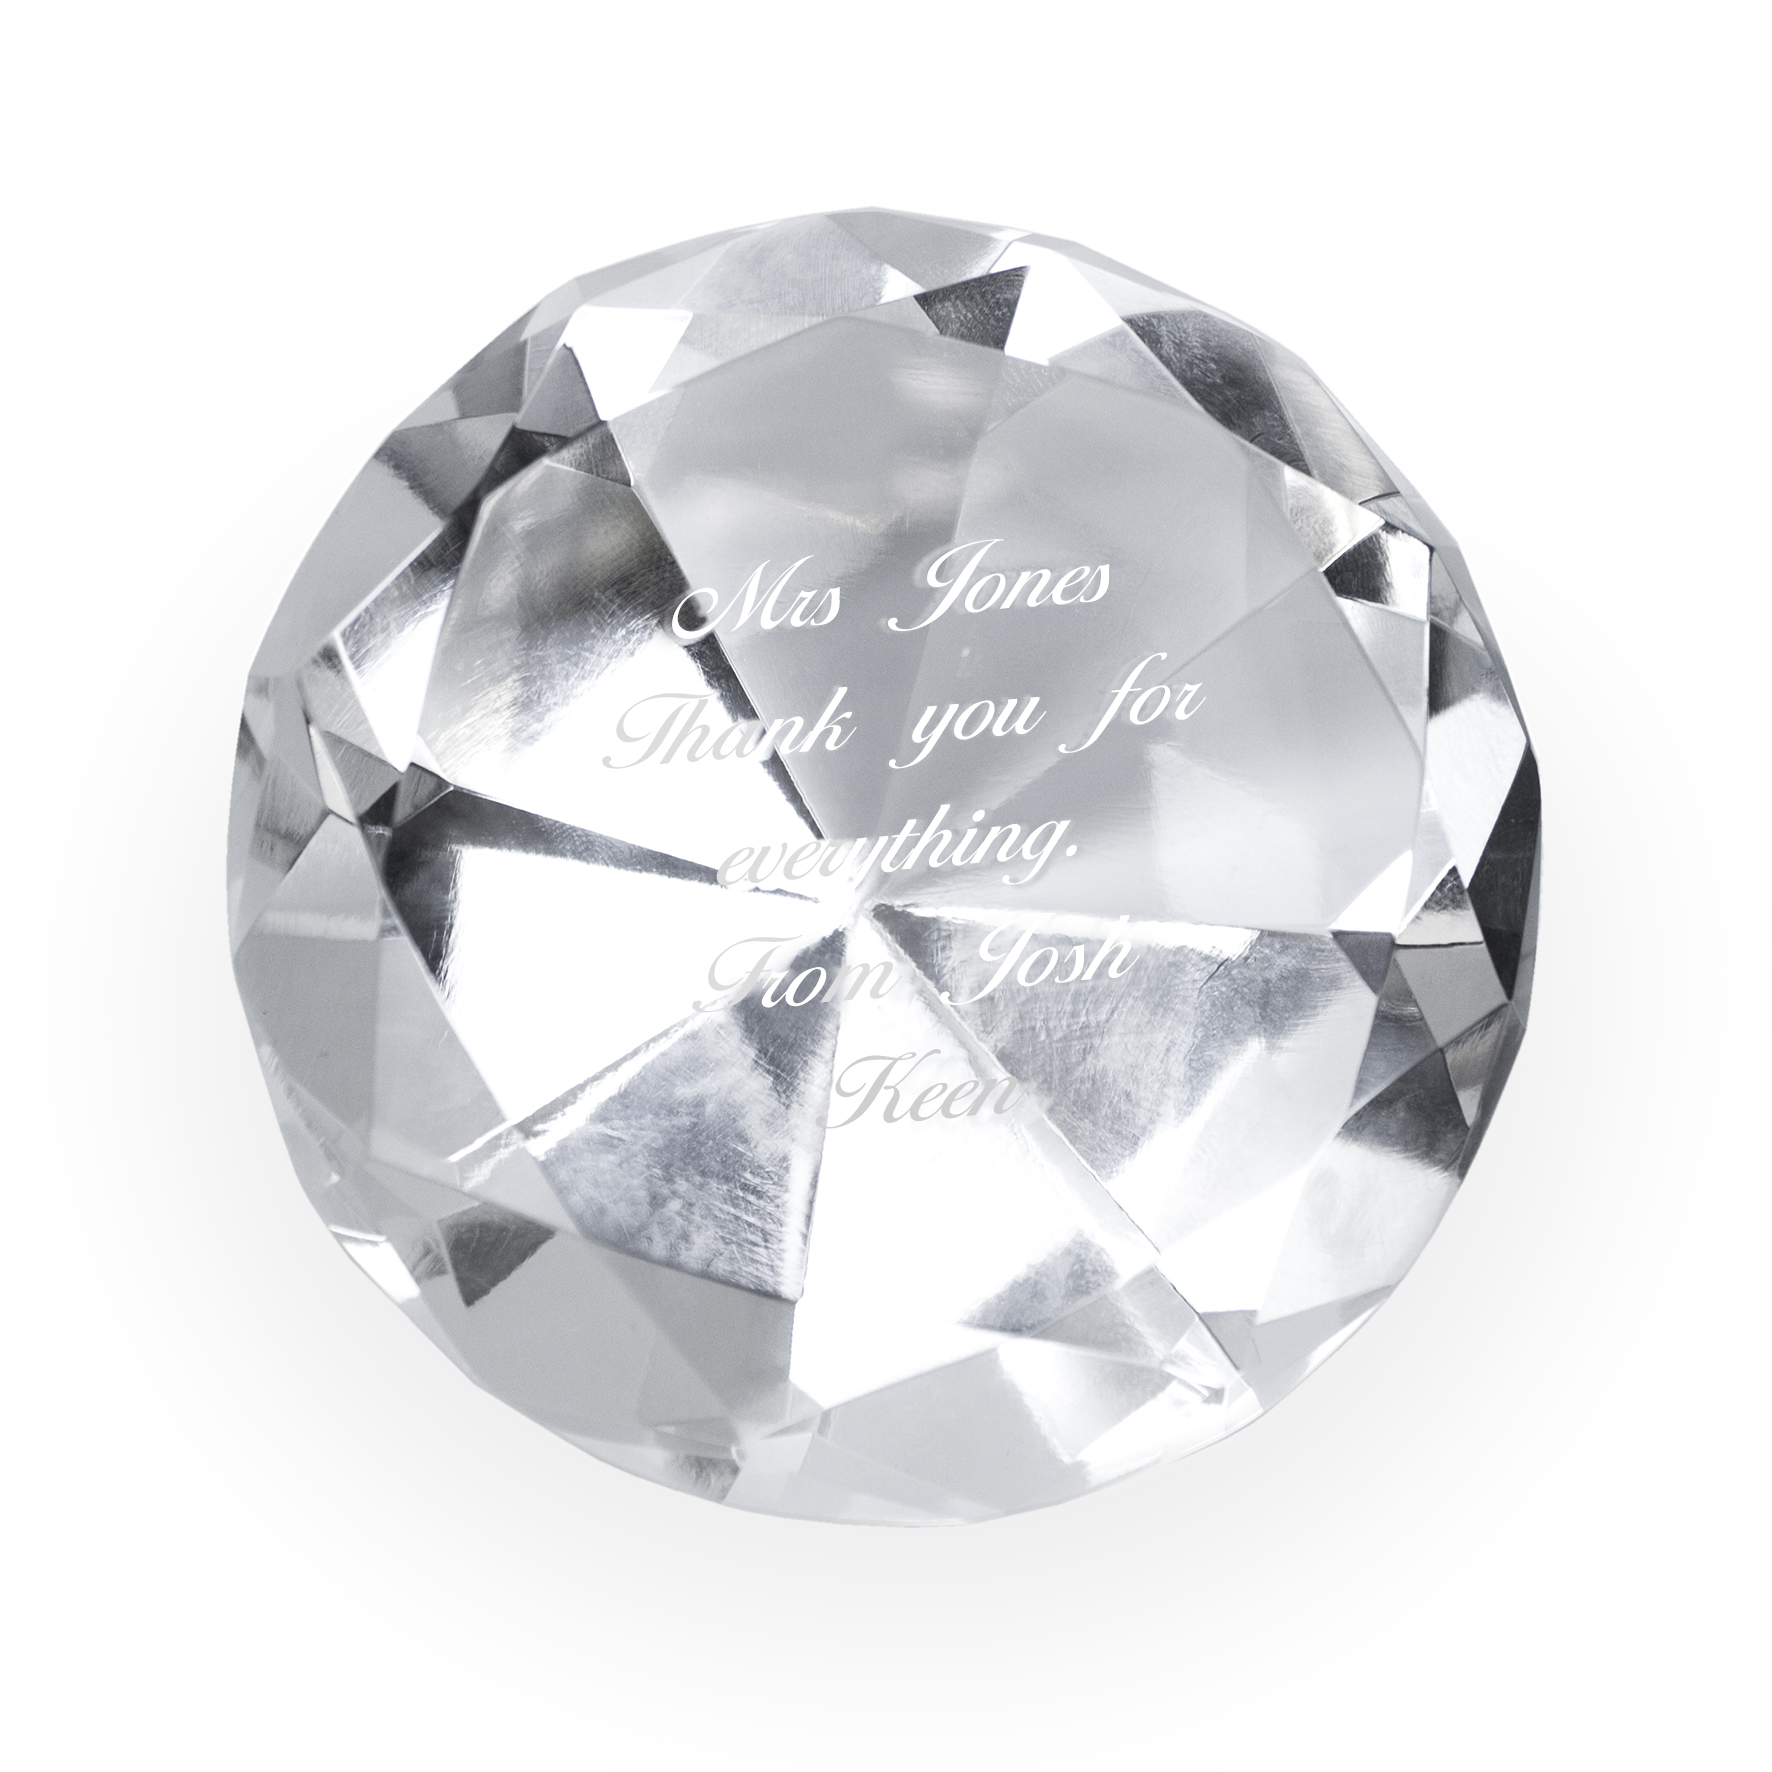 Engraved Crystal Diamond Paperweight